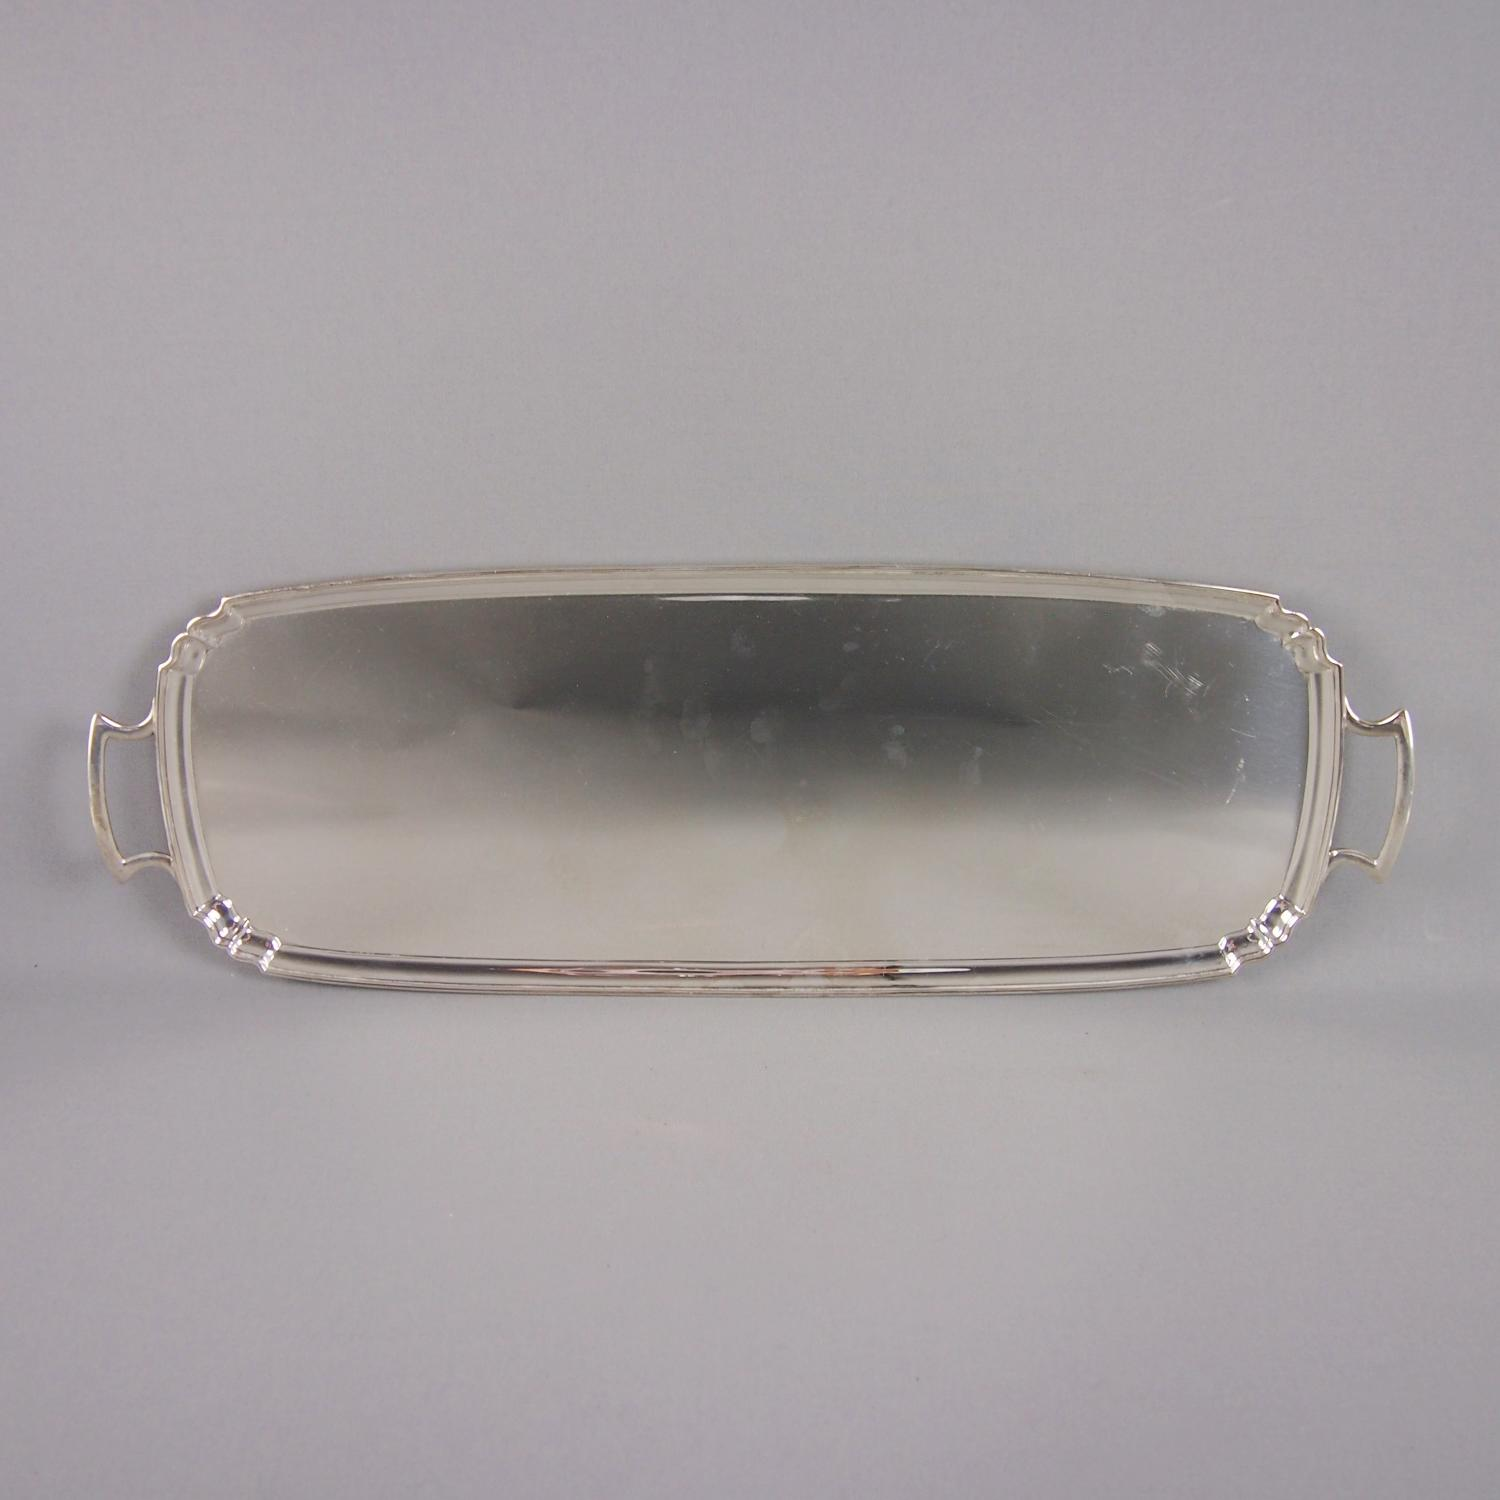 Silver Plated Oblong Cocktail Tray